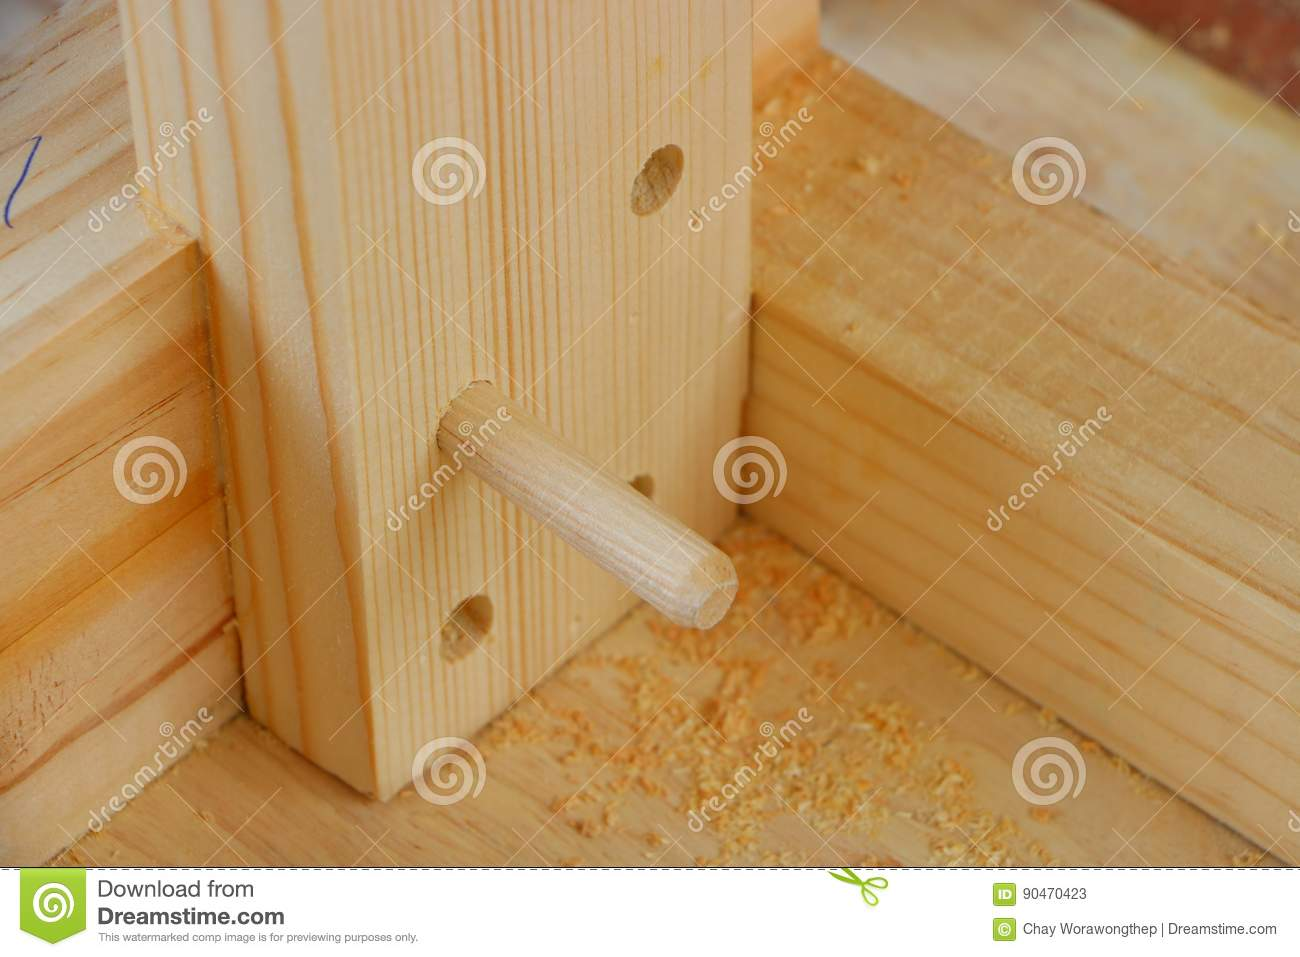 Dowel Joint And Hole Stock Image Image Of Craft Craftsman 90470423